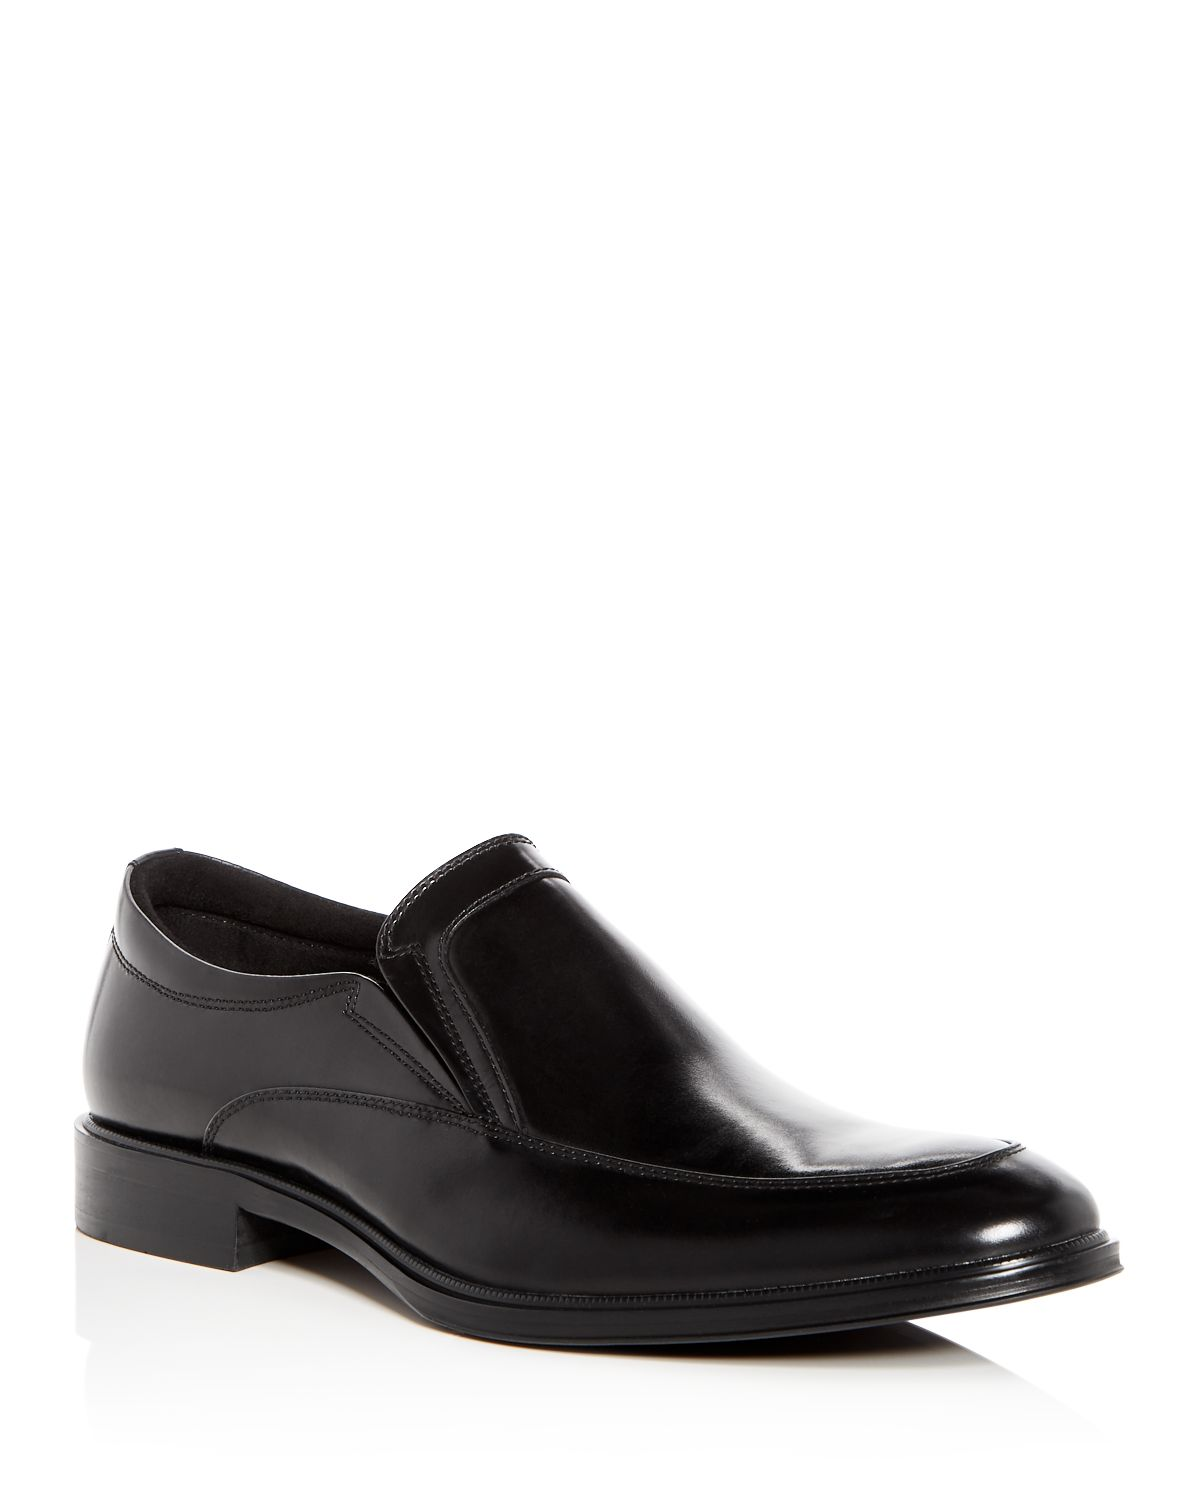 Kenneth Cole Men's Tully Leather Apron Toe Loafers